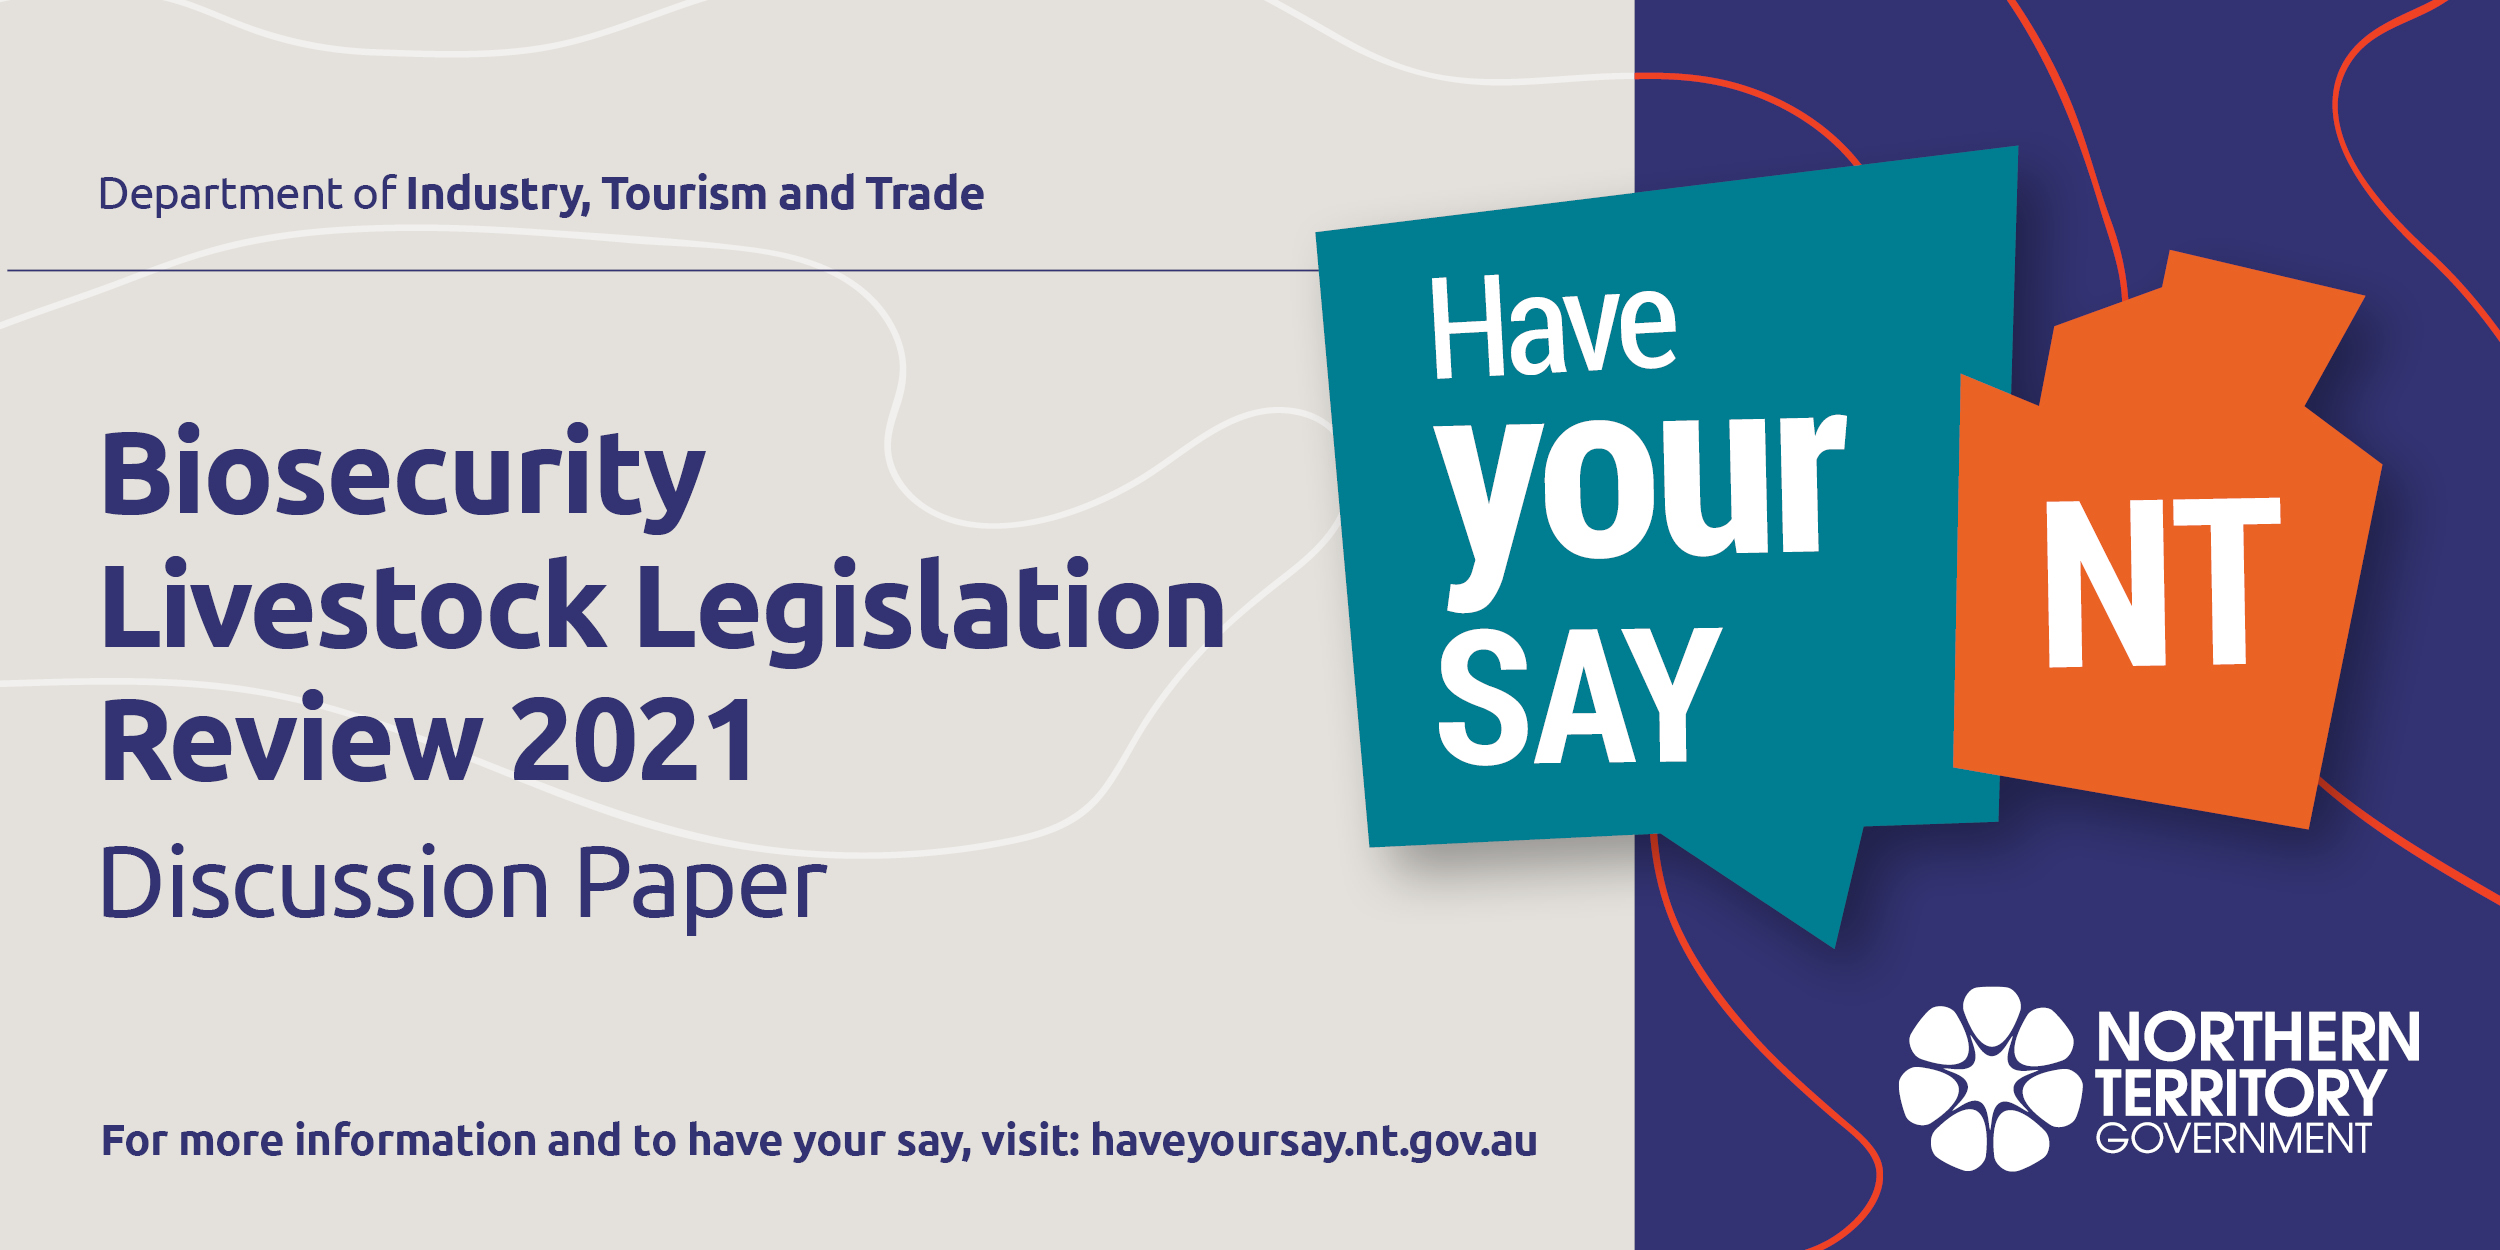 Biosecurity livestock legislation review 2021 discussion paper - have your say NT